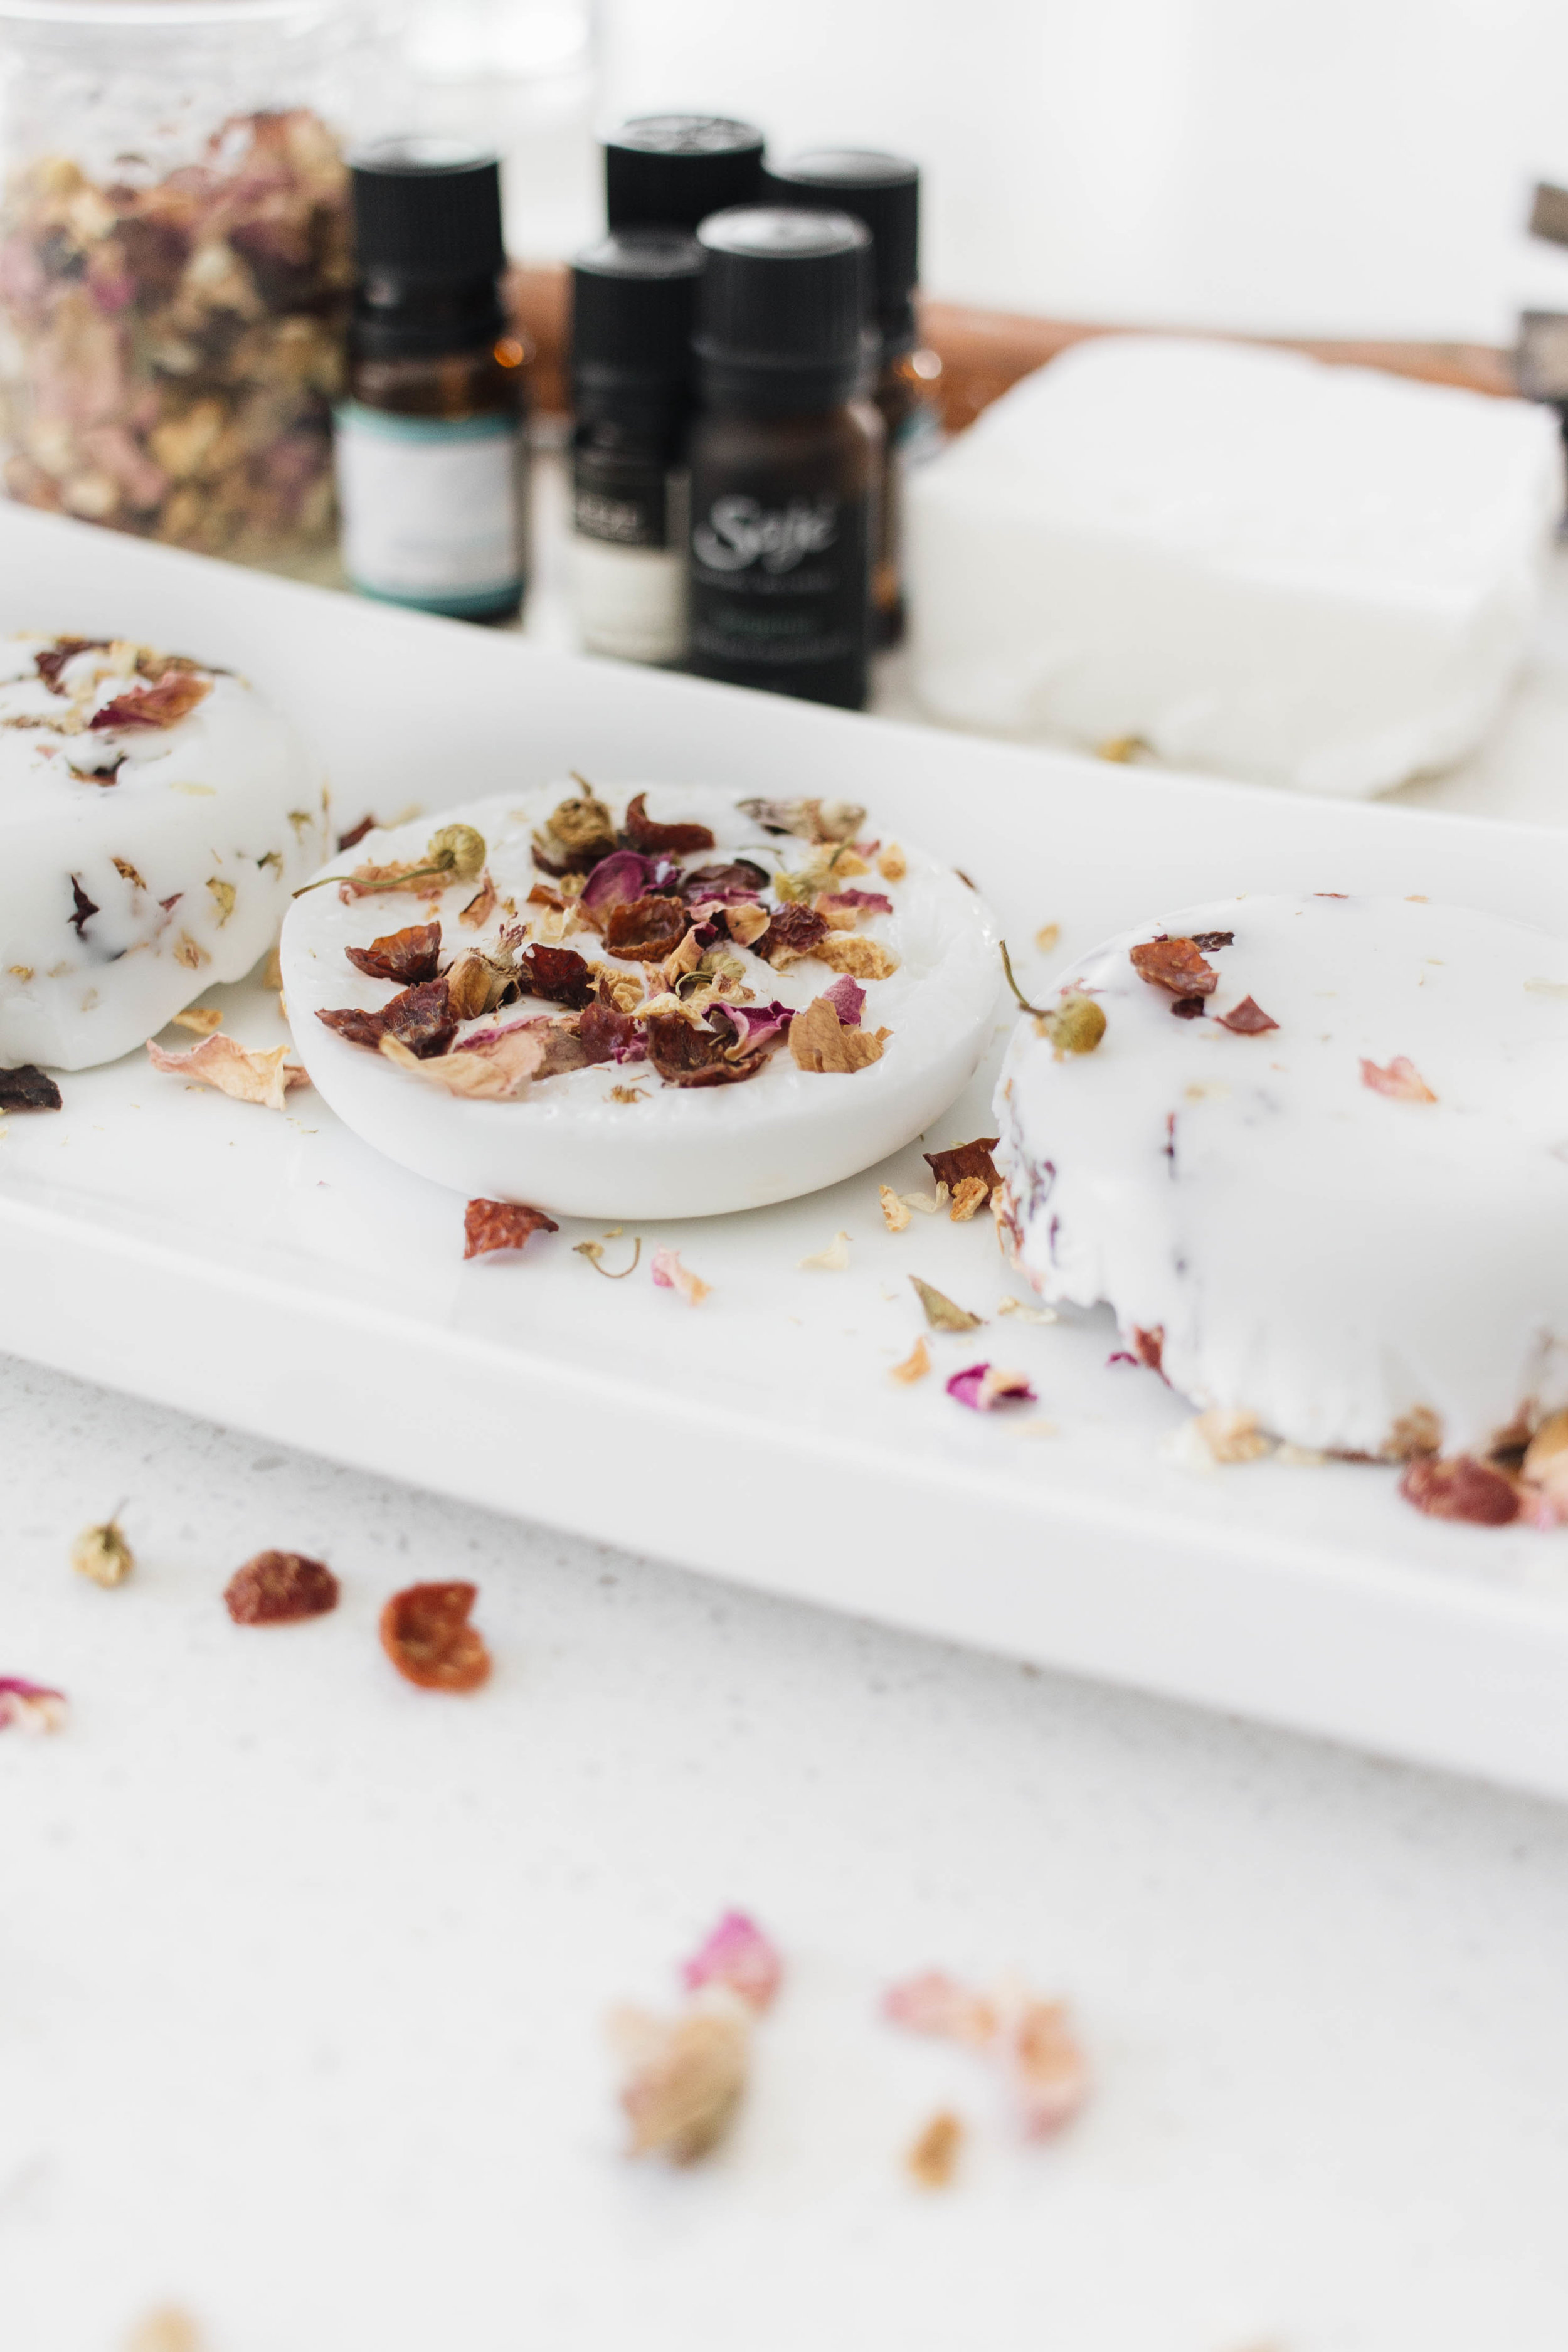 Diy Soap Essential Oils Diy Soap With Essential Oils And Dried Flowers Cashmere Plaid